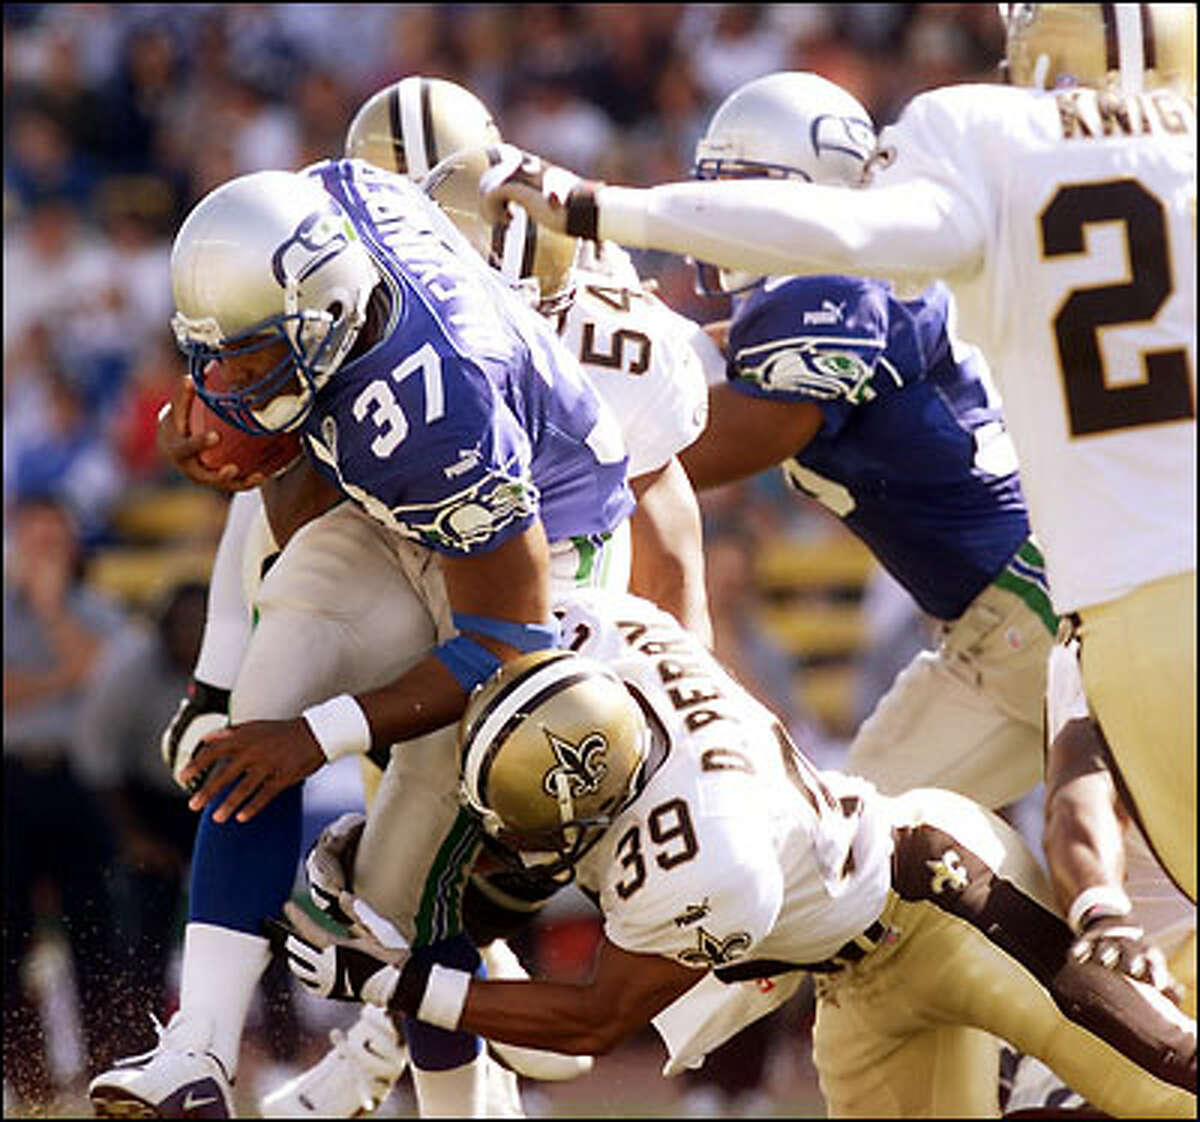 Seattle's Shaun Alexander plows through New Orleans tacklers for a short gain in the second quarter.